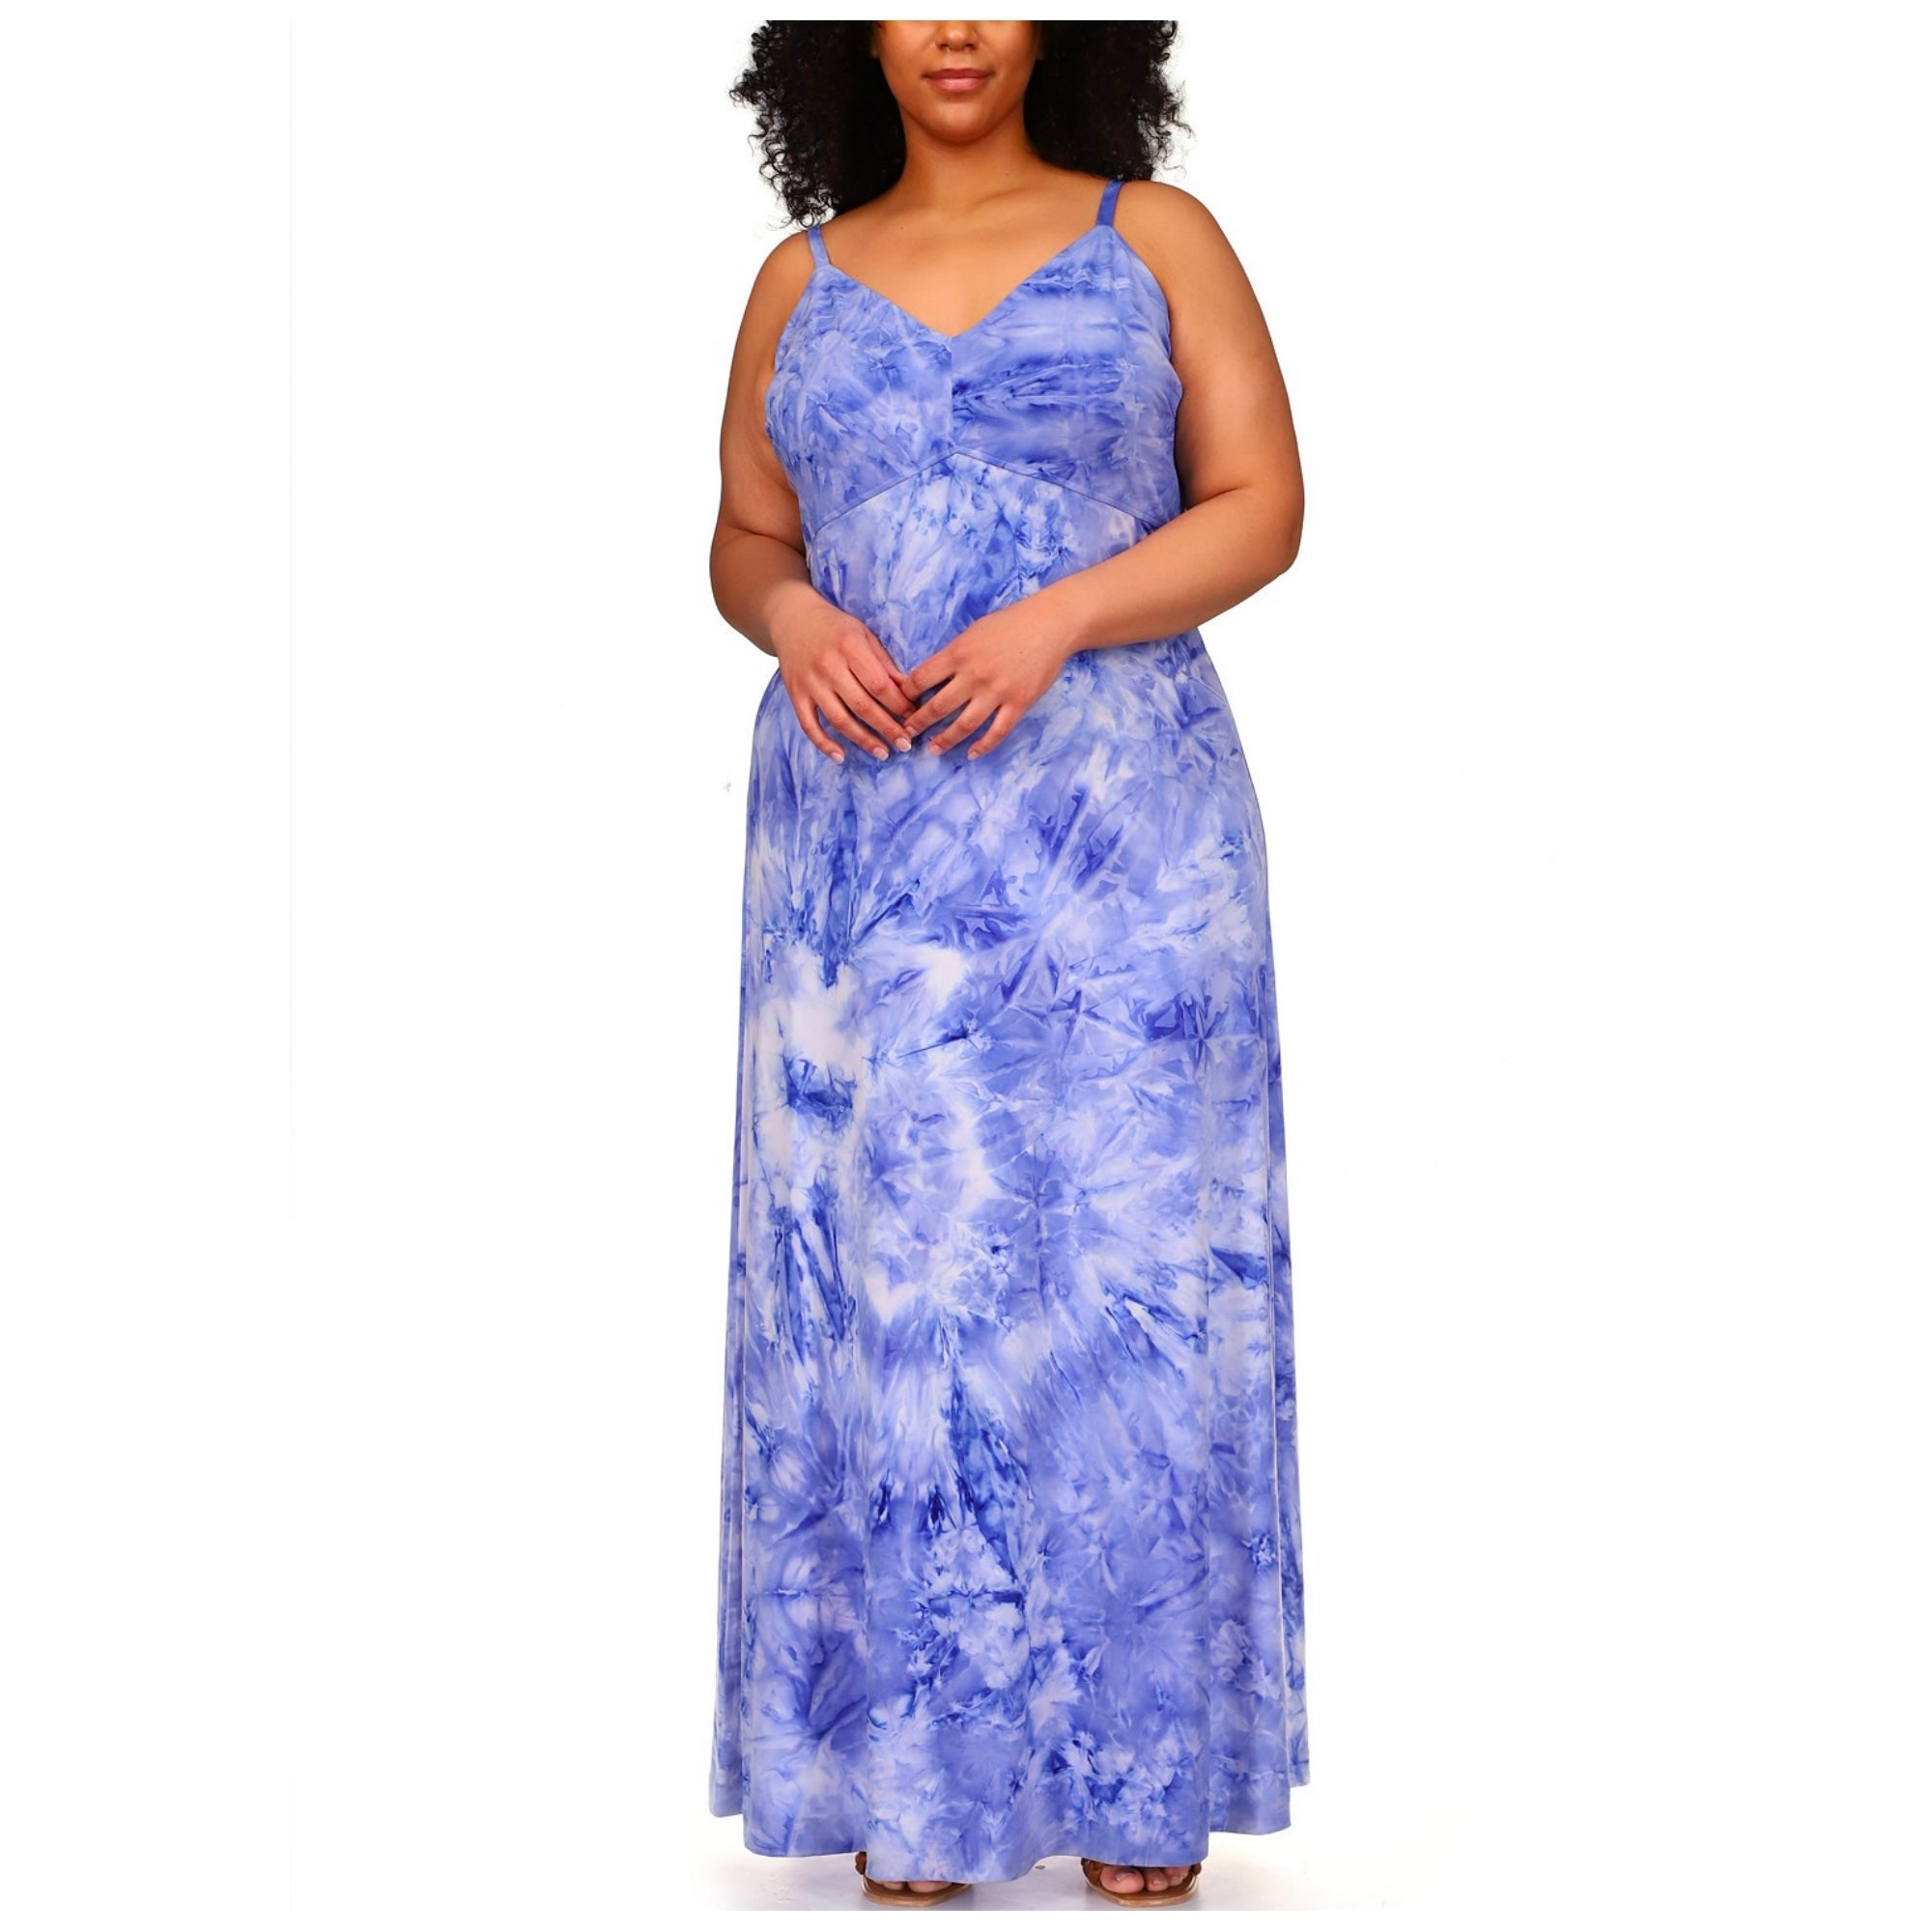 MICHAEL MICHAEL KORS Tie-Dyed Maxi Slip Dress - Macy's